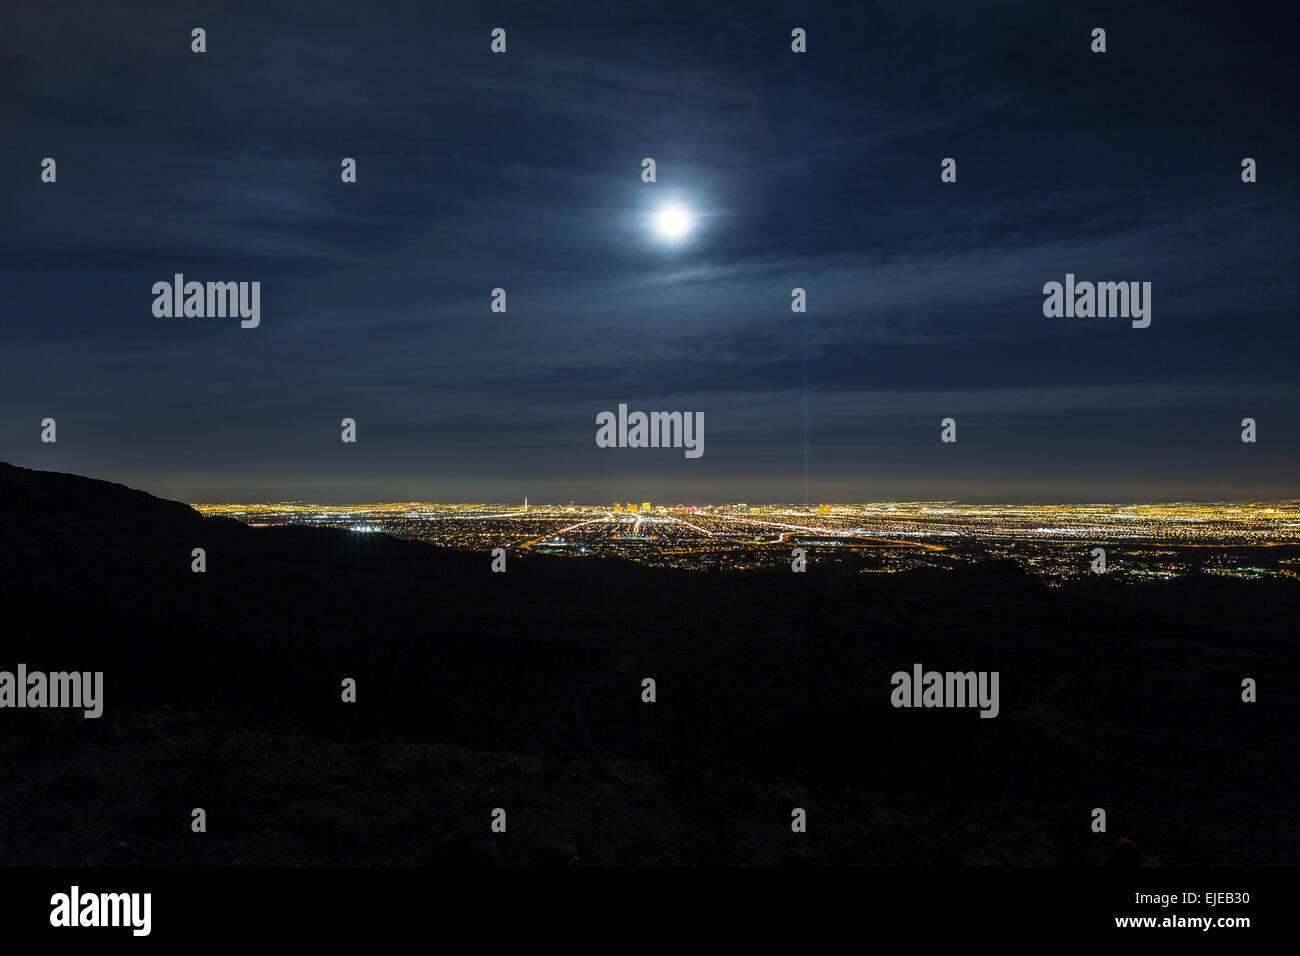 Full moon over Las Vegas, Nevada. - Stock Image